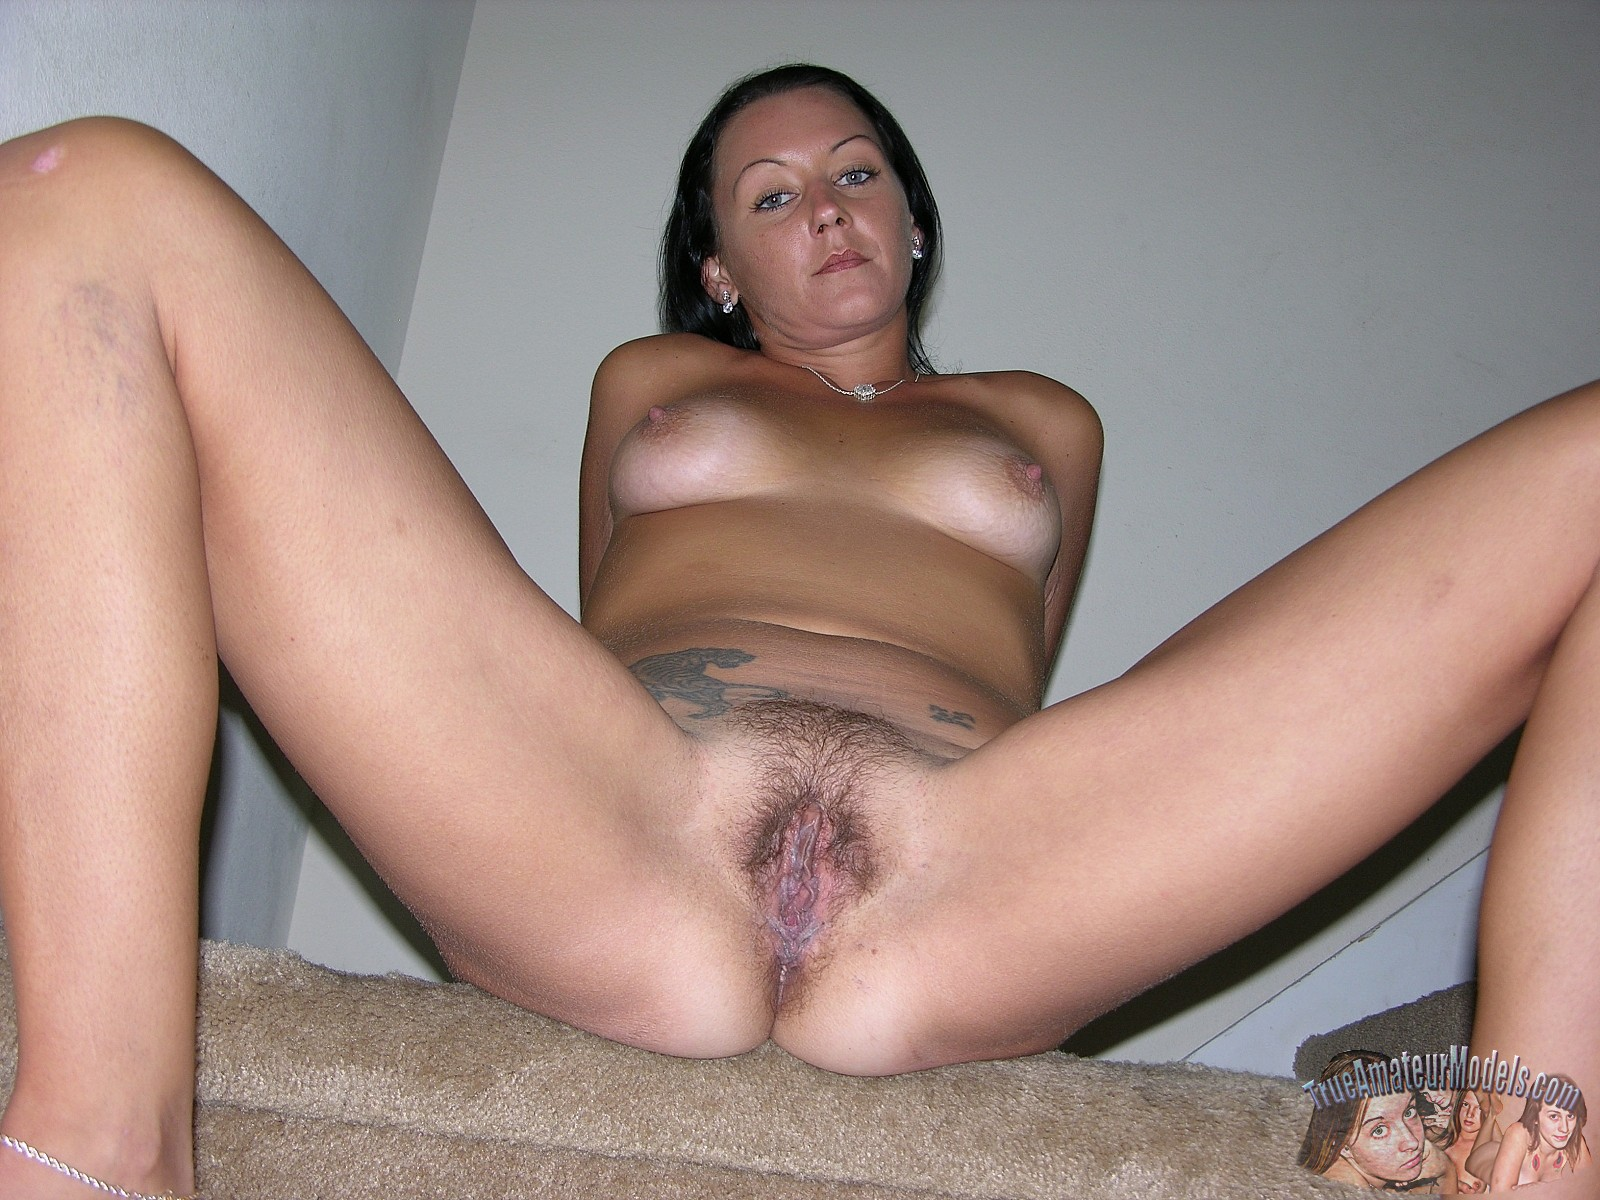 Natural Hairy Amateurs 76